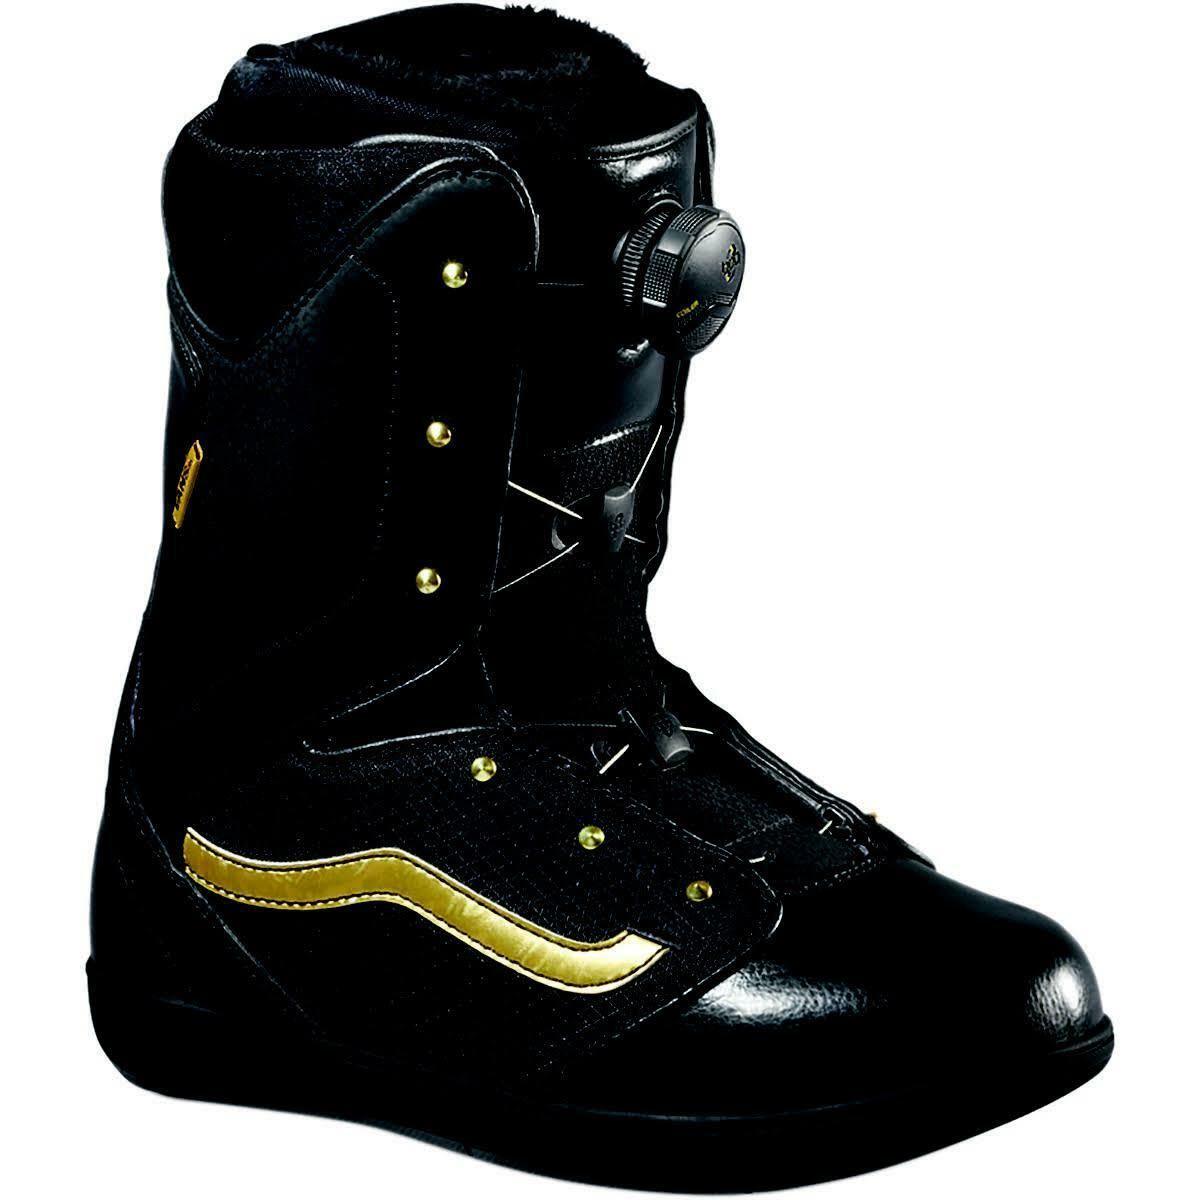 Vans Women Encore Snowboard Boots (7.5) Black / Gold